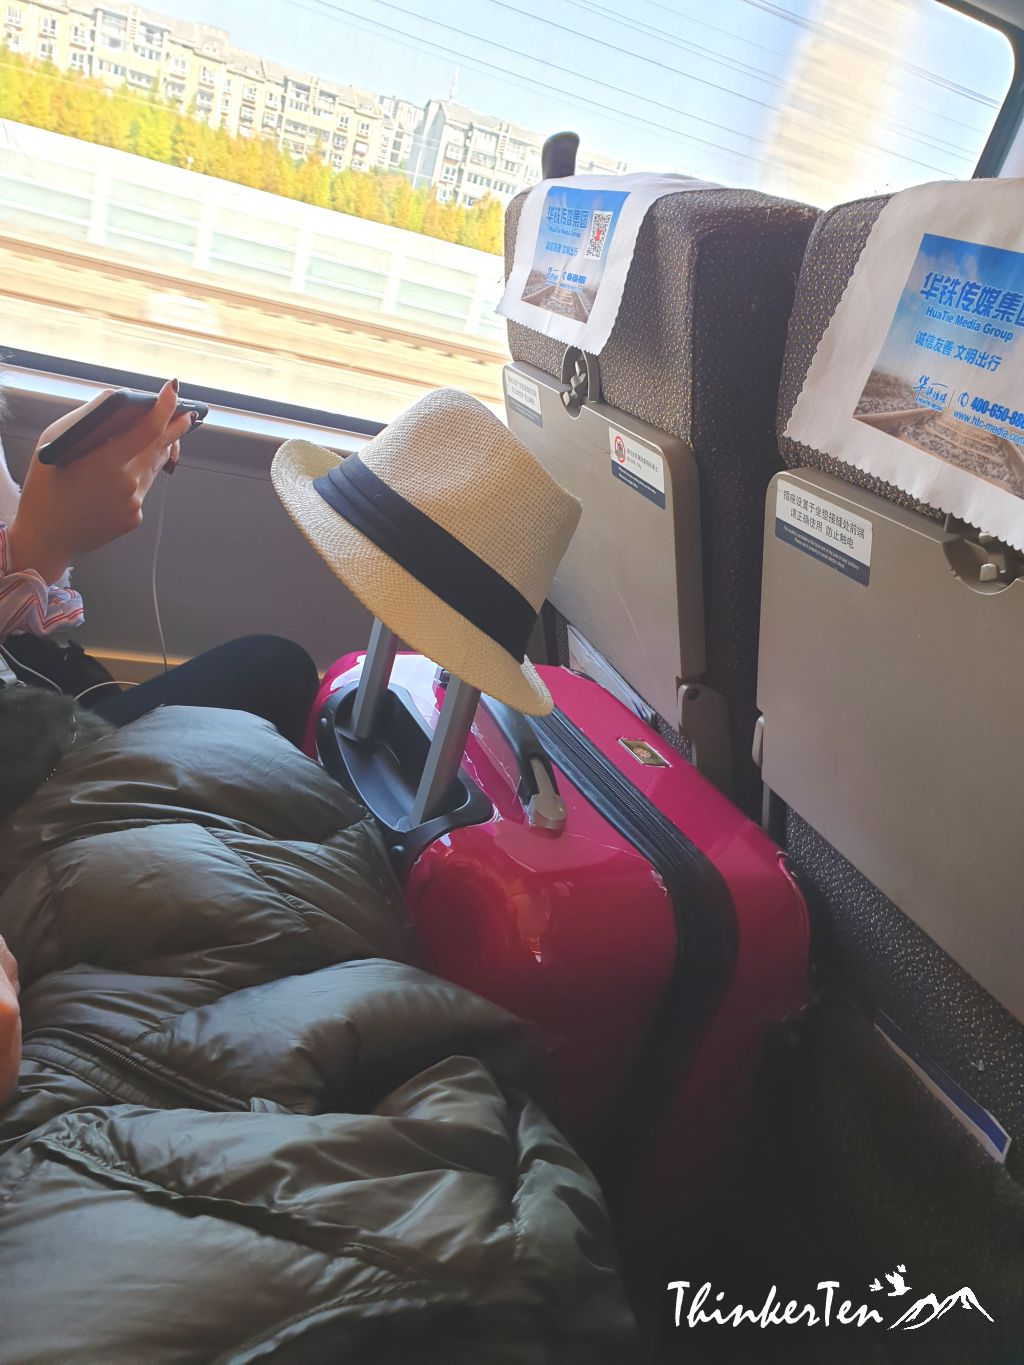 China High Speed Rail Review on Second Class Seats